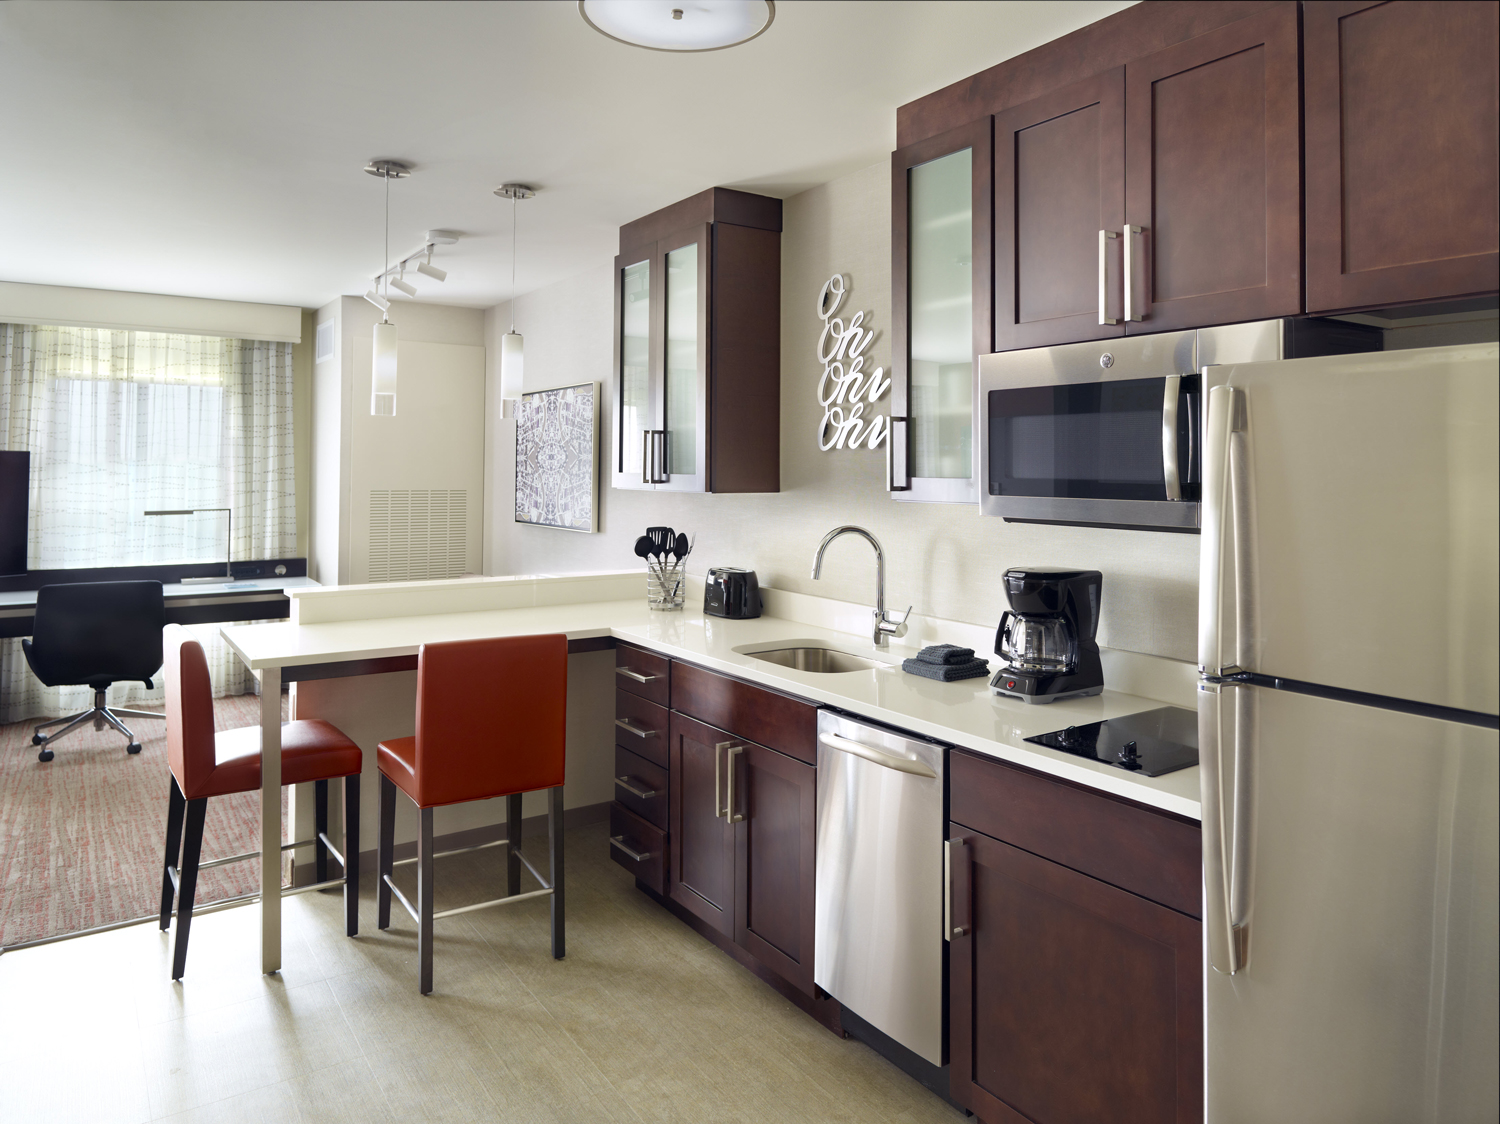 residence-inn-studio-kitchen.jpg